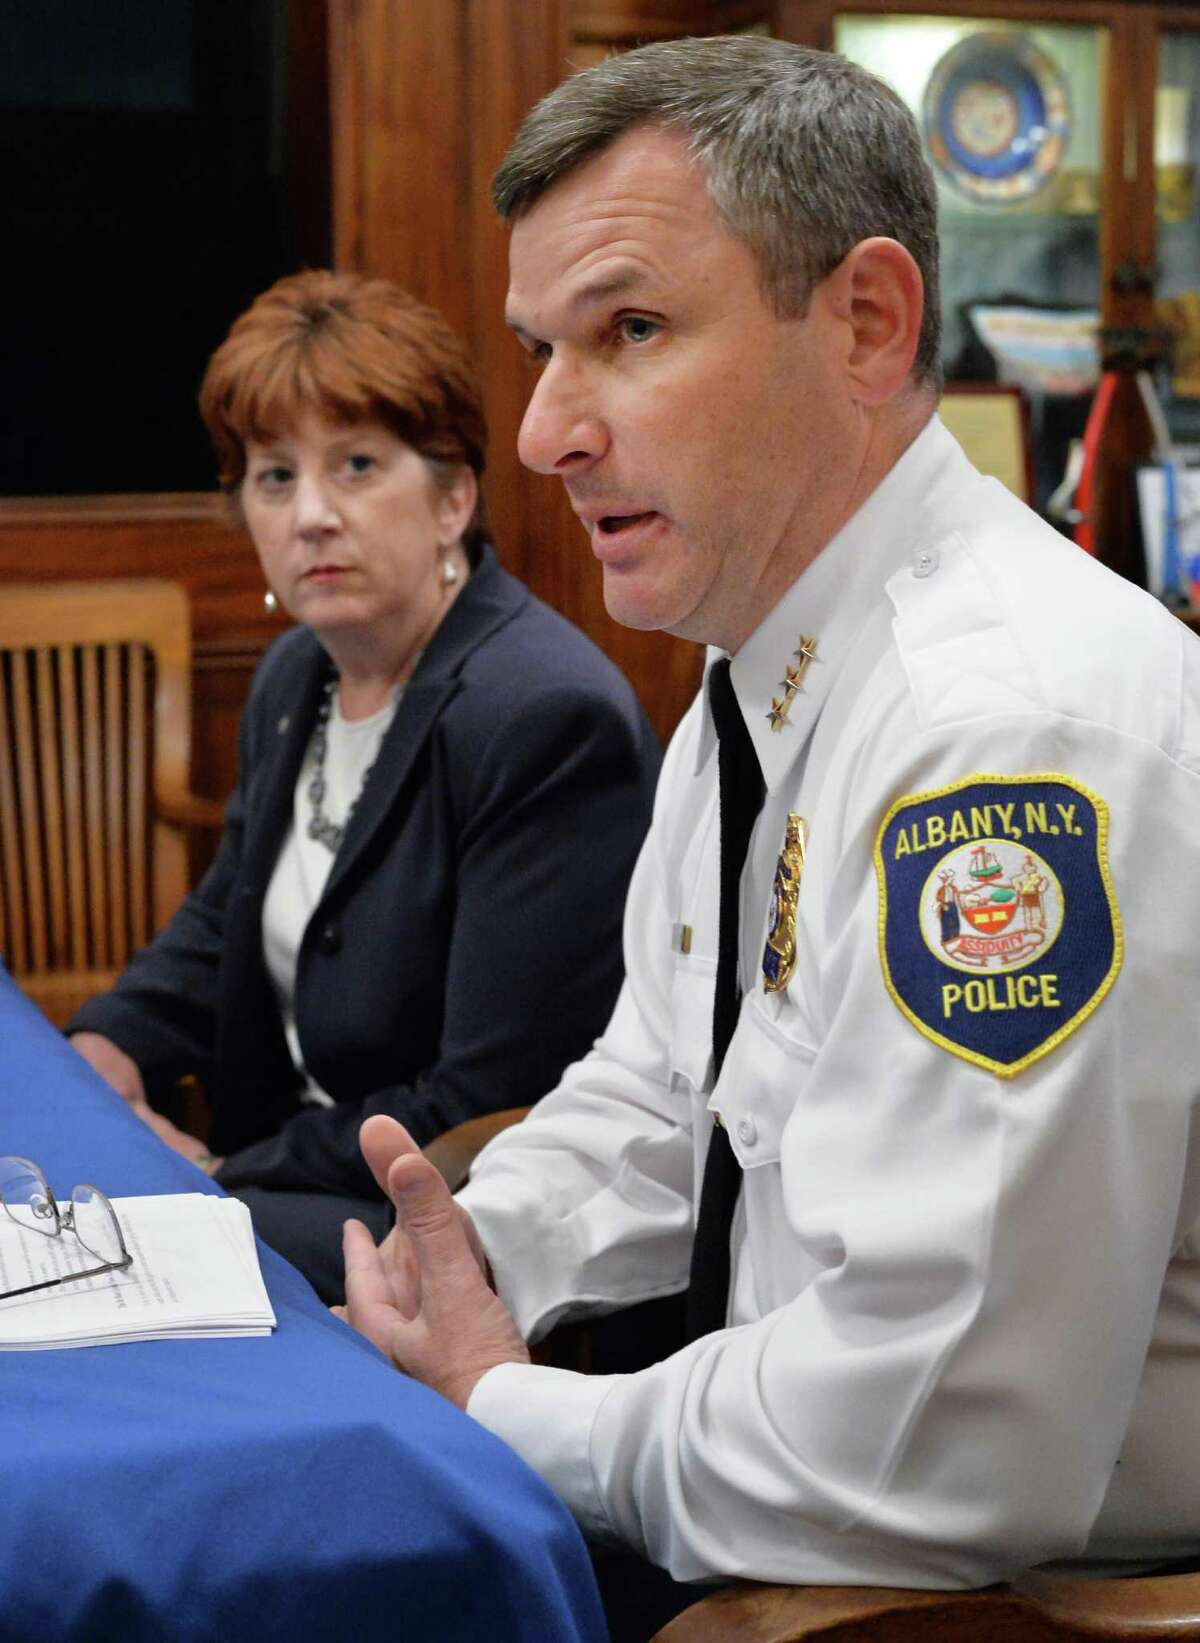 Mayor Kathy Sheehan, left, and Albany Police Department Chief of Police Brendan Cox answer reporters questions about the decision by the Albany County Grand Jury on the case of Donald Ivy during a news conference at City Hall Wednesday Oct. 28, 2015 in Albany, NY. (John Carl D'Annibale / Times Union) ORG XMIT: MER2015102815533813